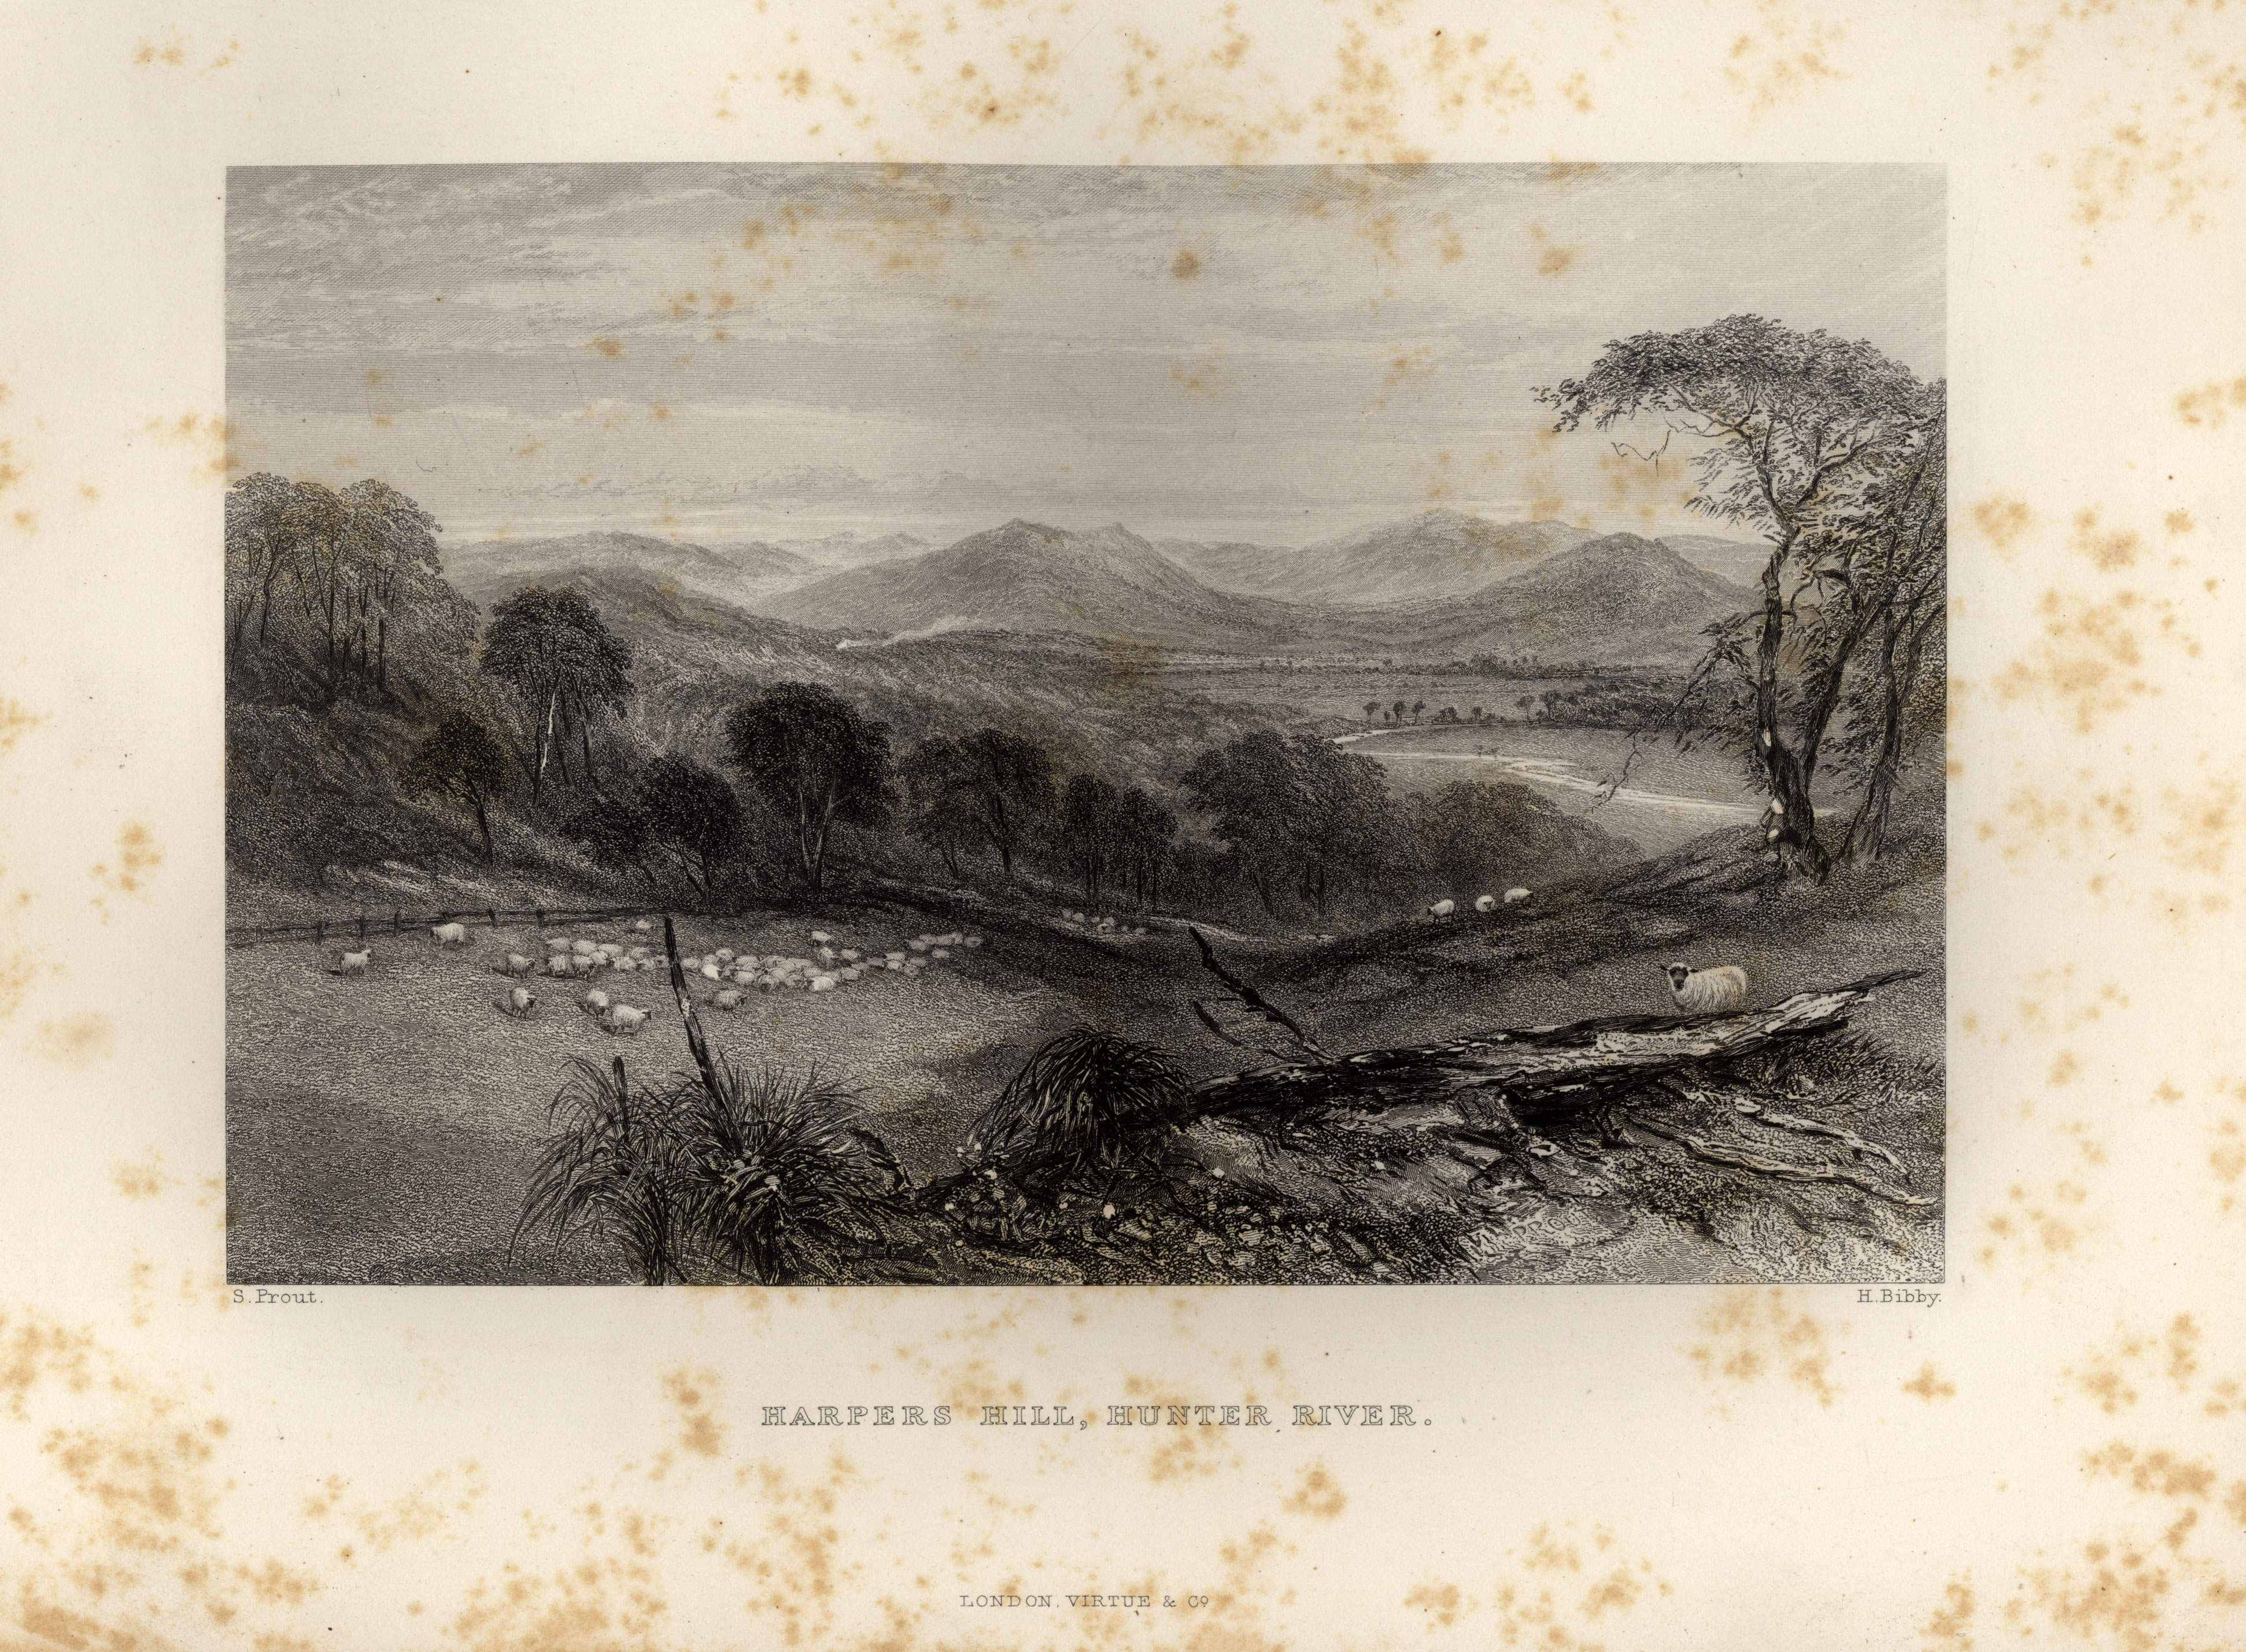 """Plate """"Harpers Hill, Hunter River"""" S Prout H. Bibby facing page 128 from Australia by Edwin Carton Booth, F R. C. I. Illustrated with Drawings by Skinner Prout, N. Chevalier, &c. &c. In Two Volumes Vol. II London Virtue and Company Limited (1873-1876)."""